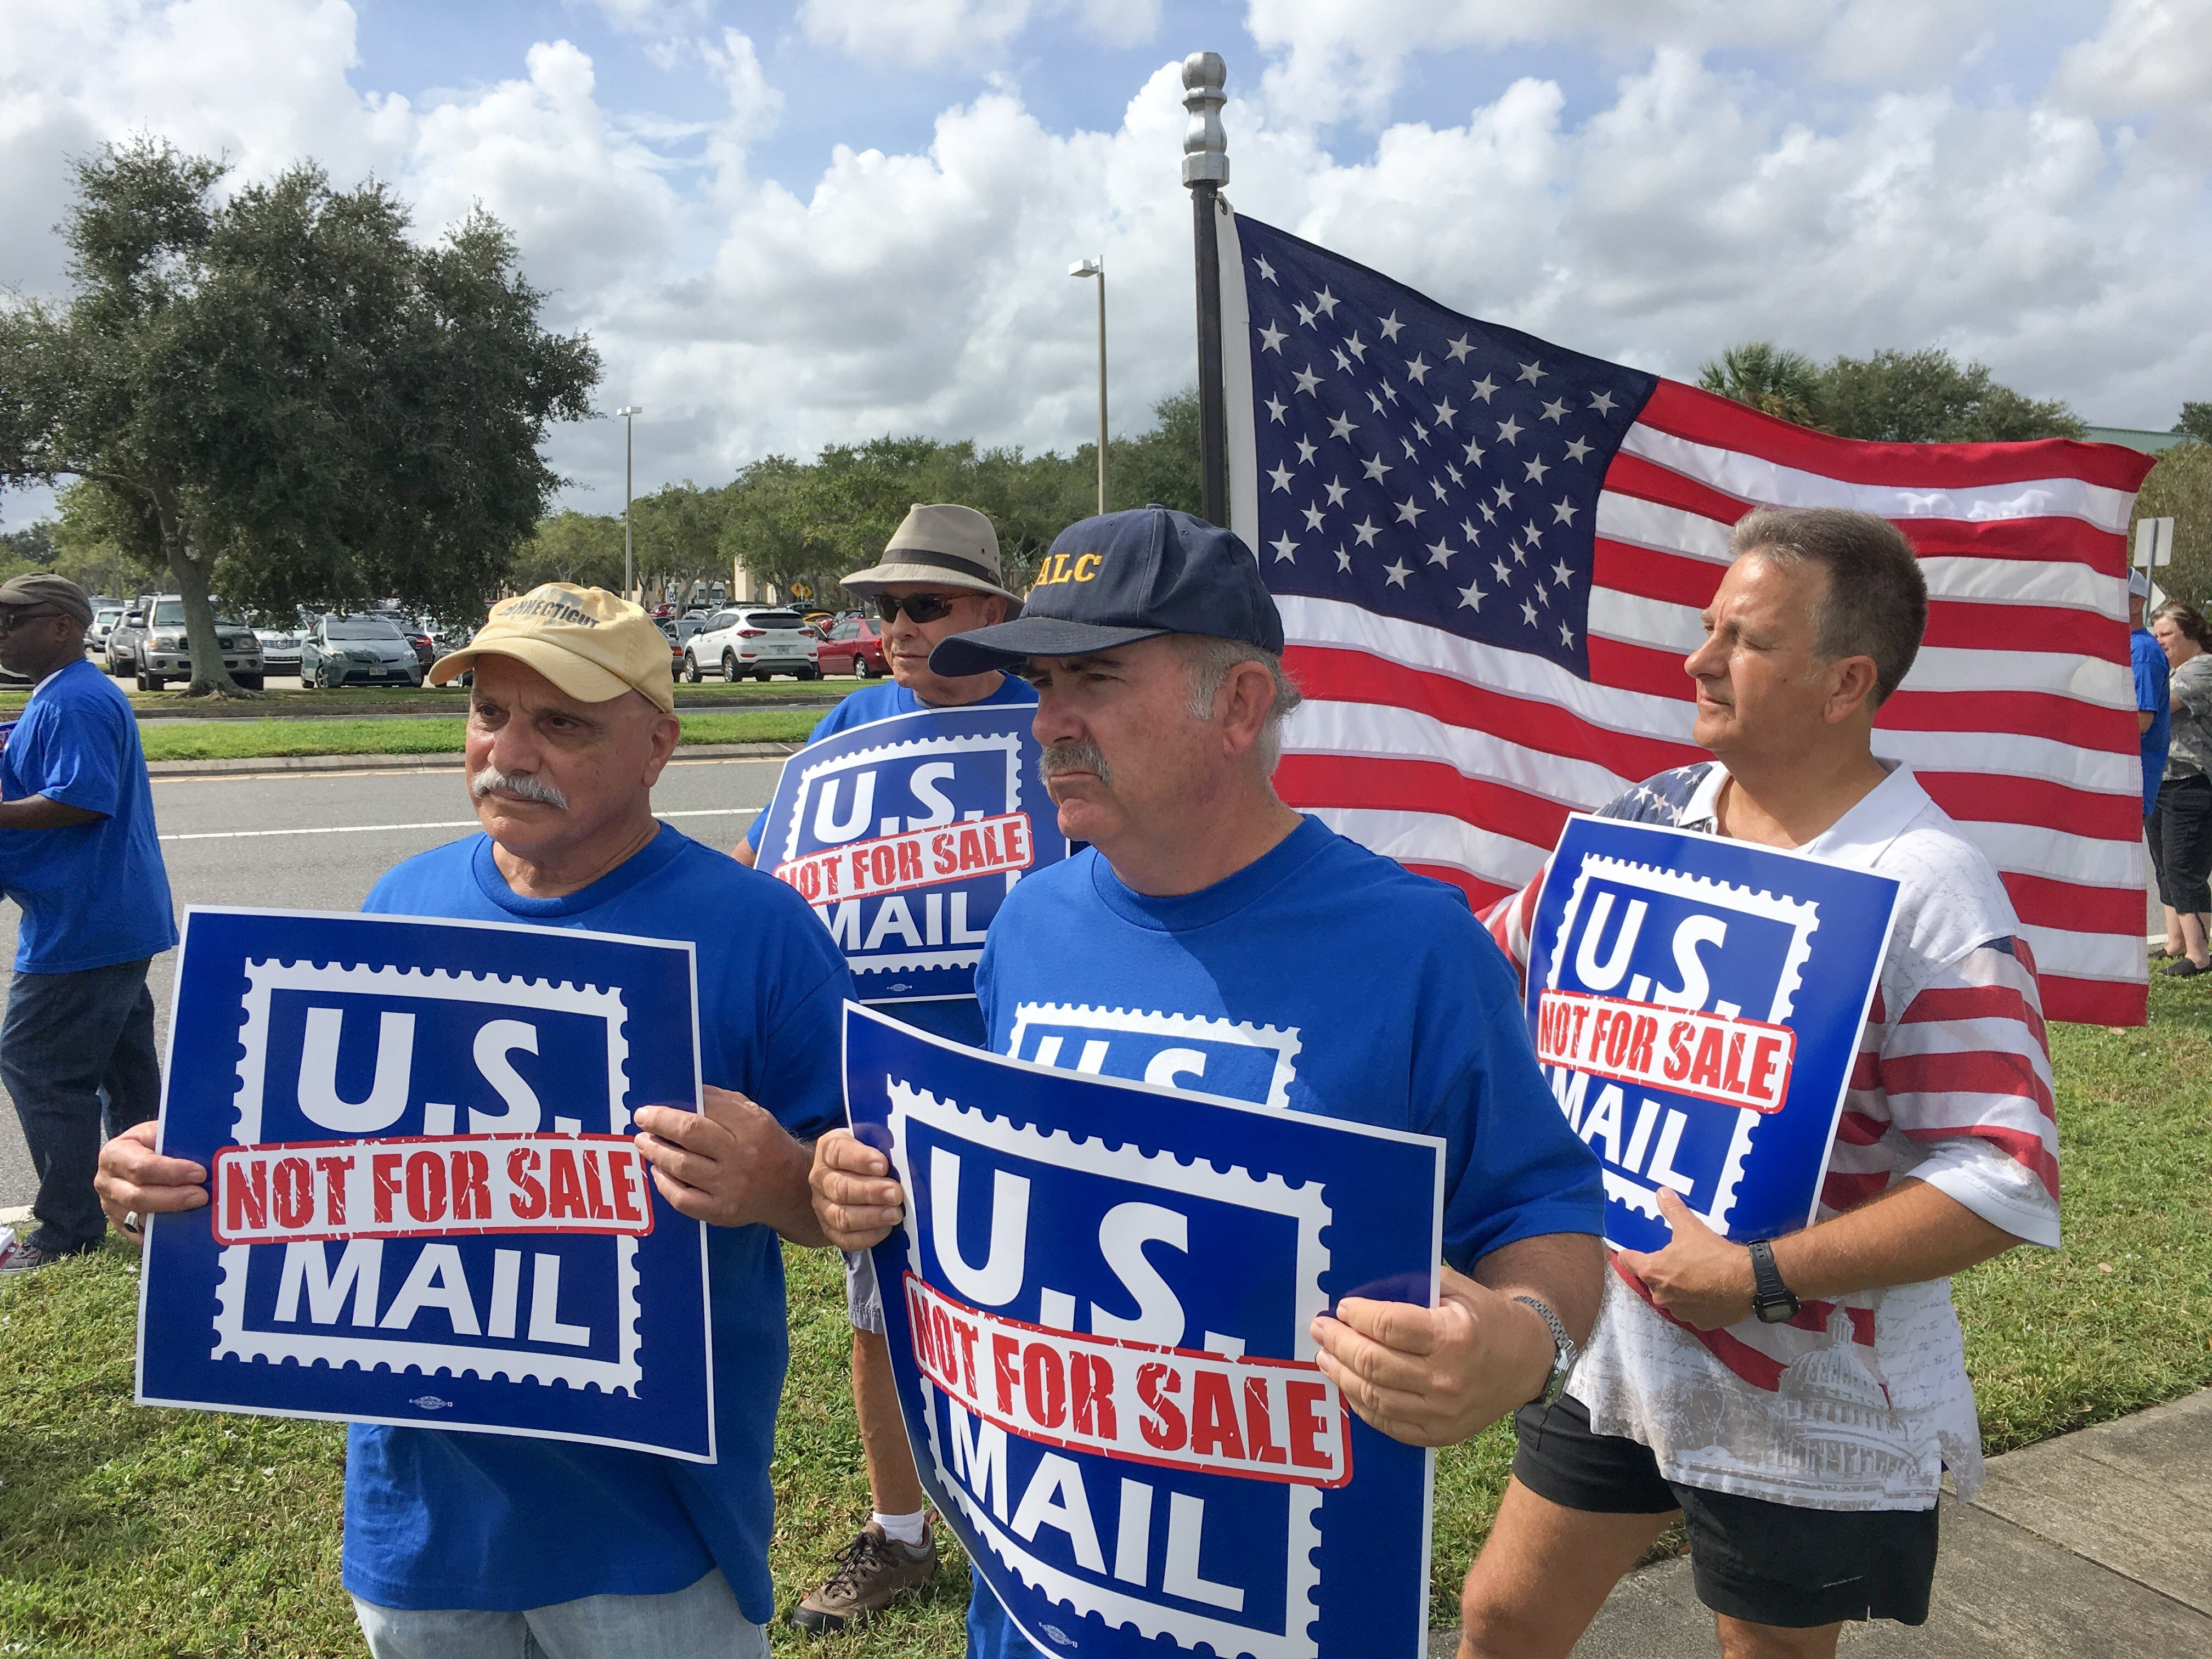 dfe3780b-2af8-4203-b72c-e6594034063a-Postal_workers Postal unions protest in Viera against Trump proposal to privatize mail service